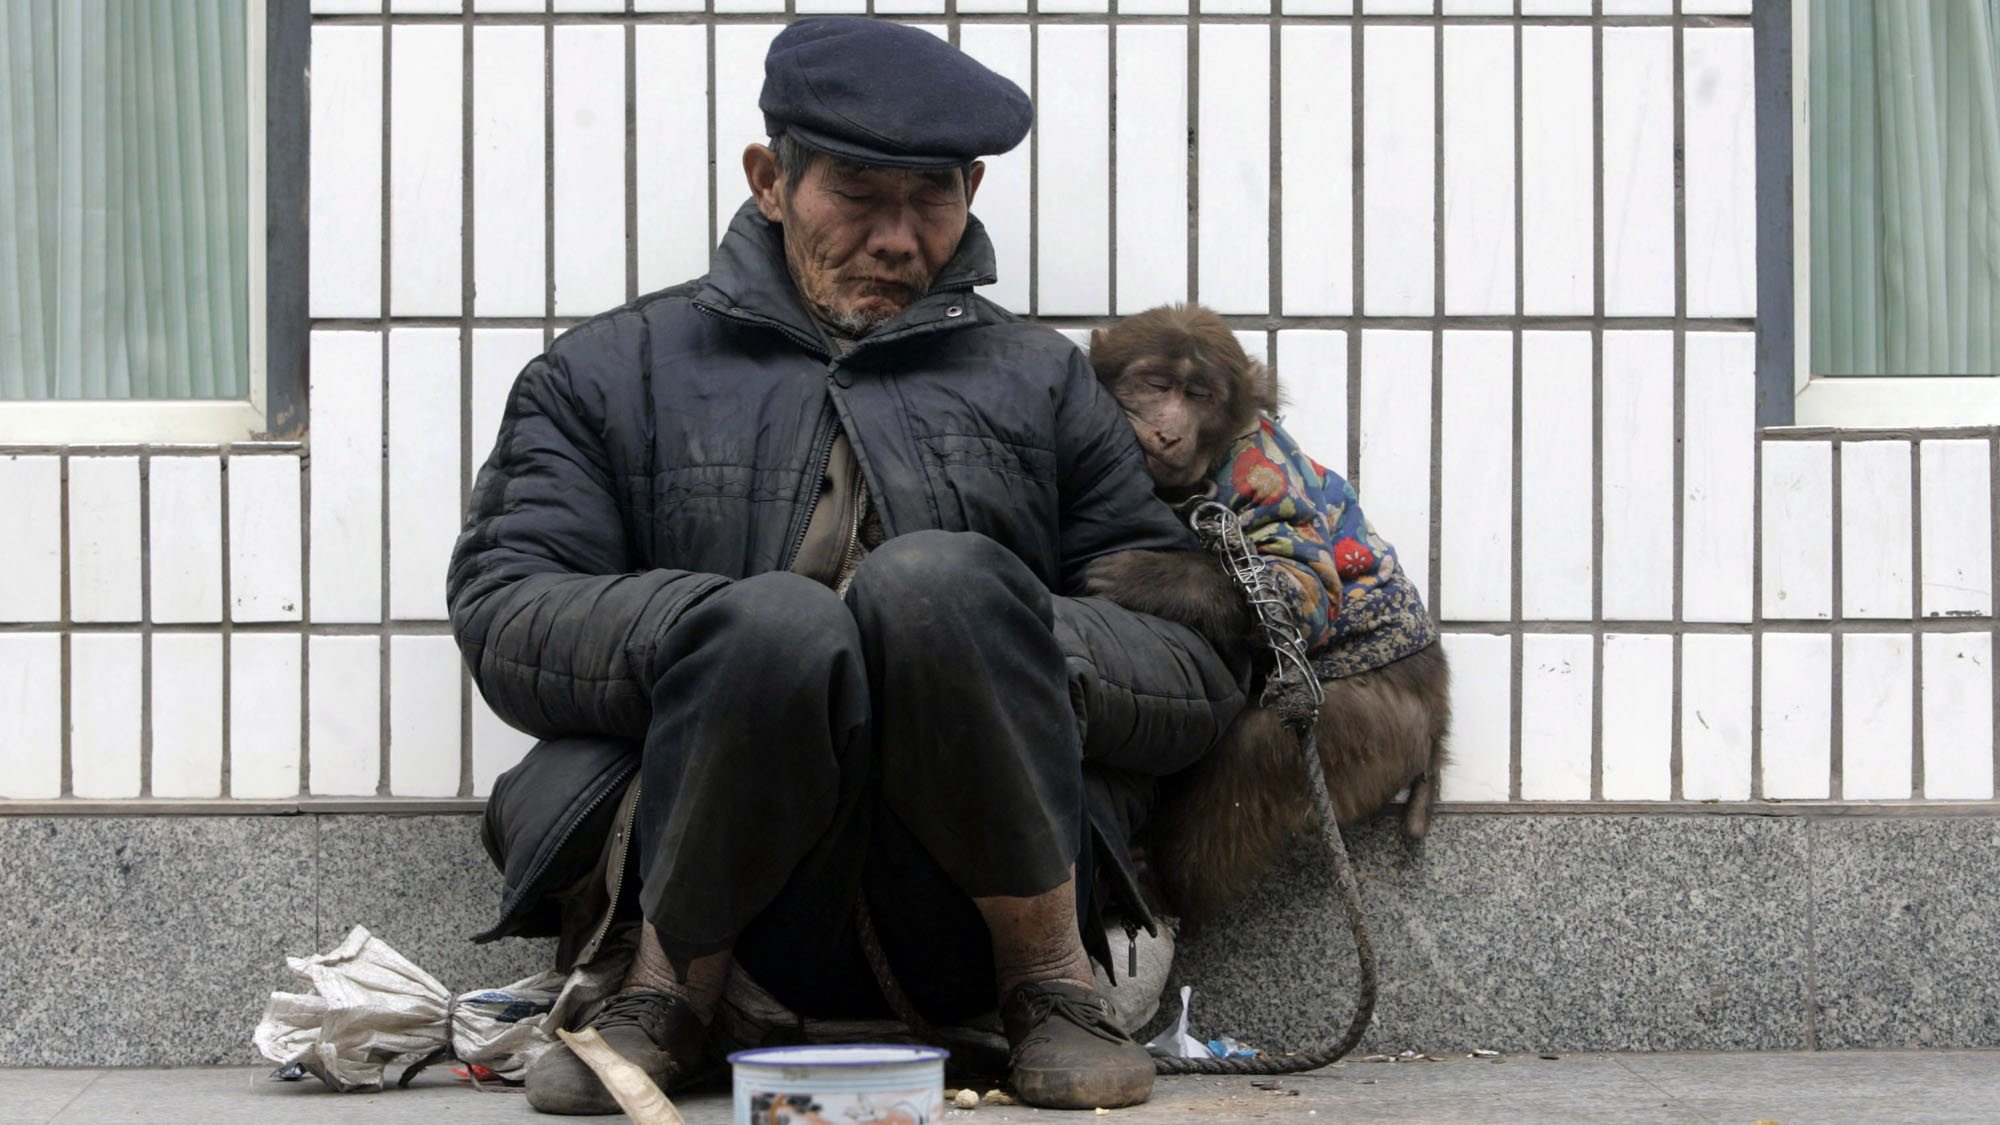 A beggar naps with his monkey on a street in Chongqing municipality February 23, 2009. Picture taken February 23, 2009.